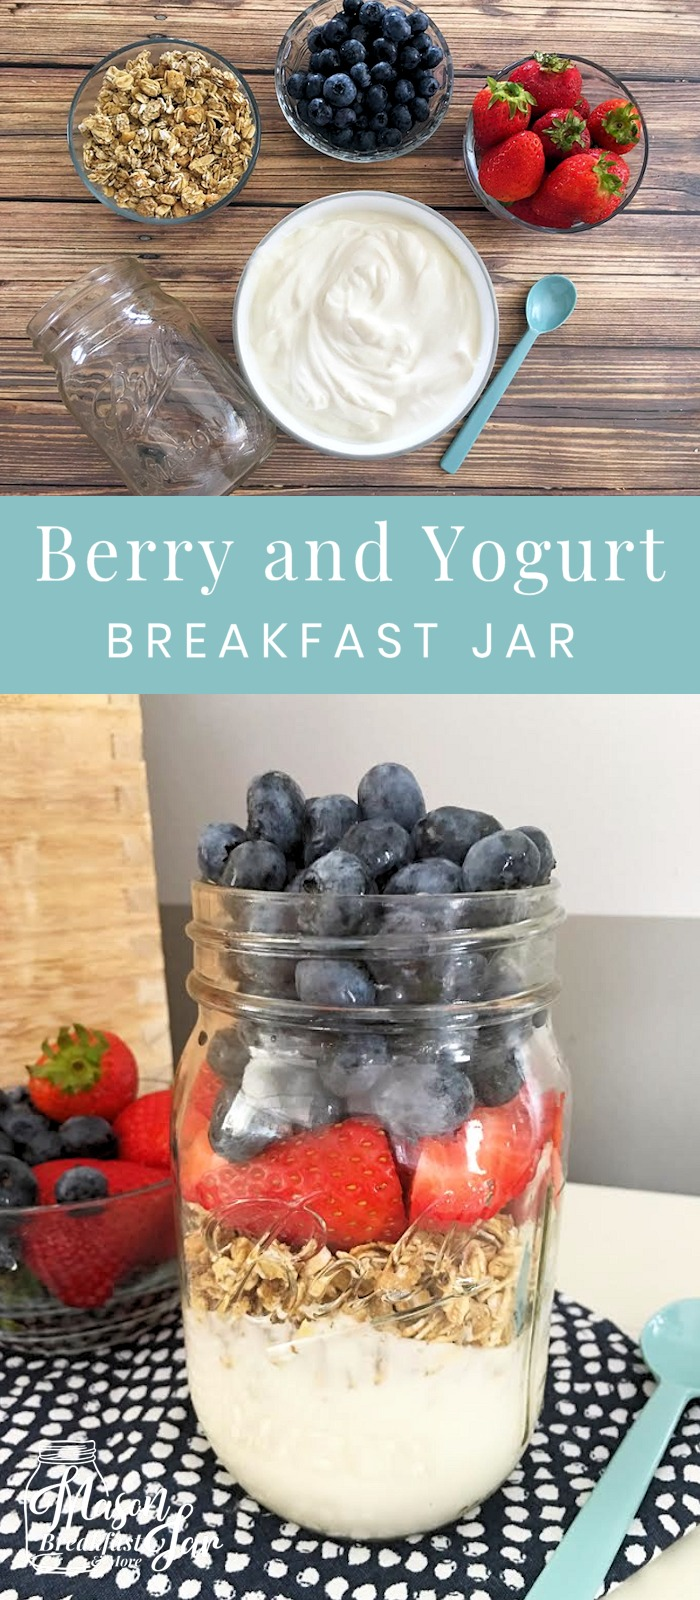 Do you need Mason jar ideas that can help you save time and eat healthier? How about starting your day with this nutritious and delicious Berry and Yogurt Breakfast in a Jar? It takes just minutes to whip up this 4-ingredient Mason jar breakfast recipe, so it's perfect for those busy mornings. #masonjarideas #masonjarbreakfast #masonjarbreakfastideas #masonjarbreakfasthealthy